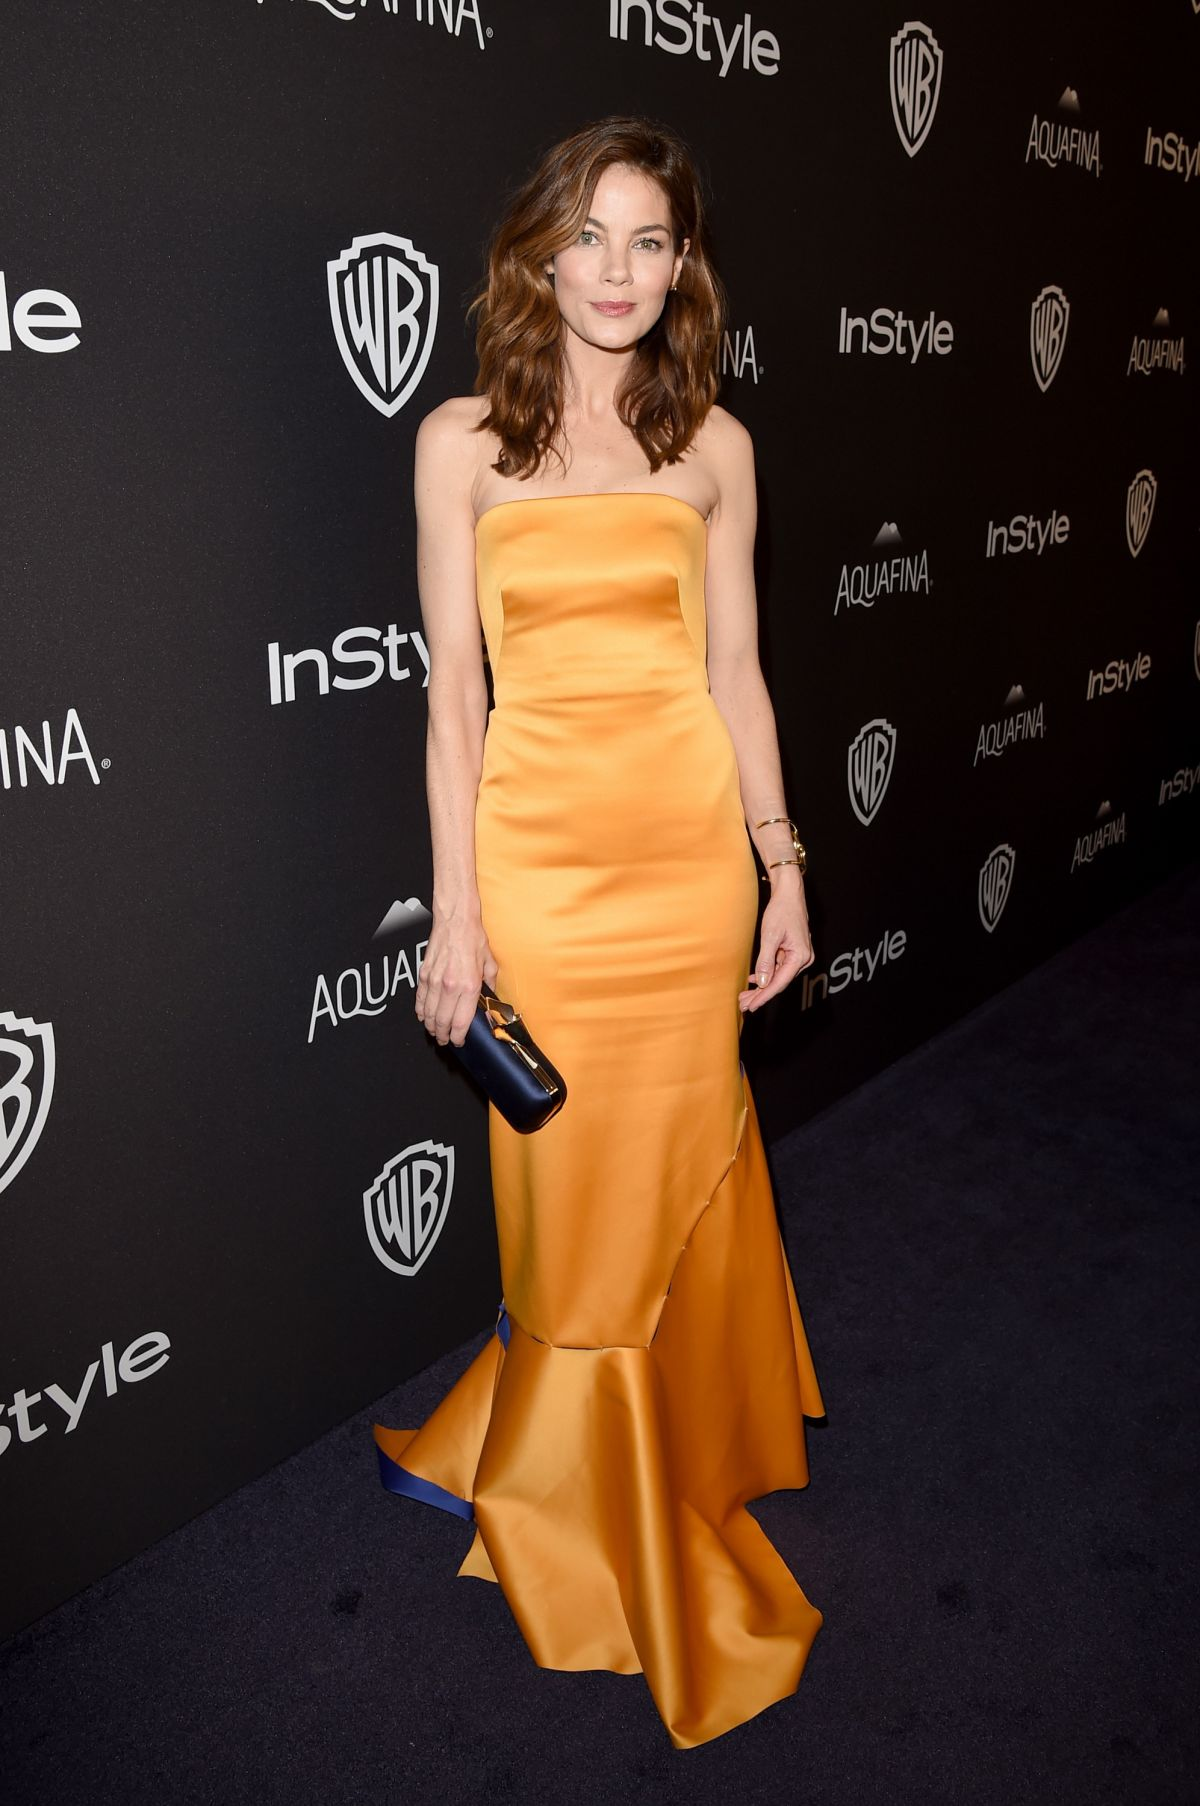 MICHELLE MONAGHAN at Instyle and Warner Bros. 2016 Golden Globe Awards Post-party in Beverly Hills 01/10/2016